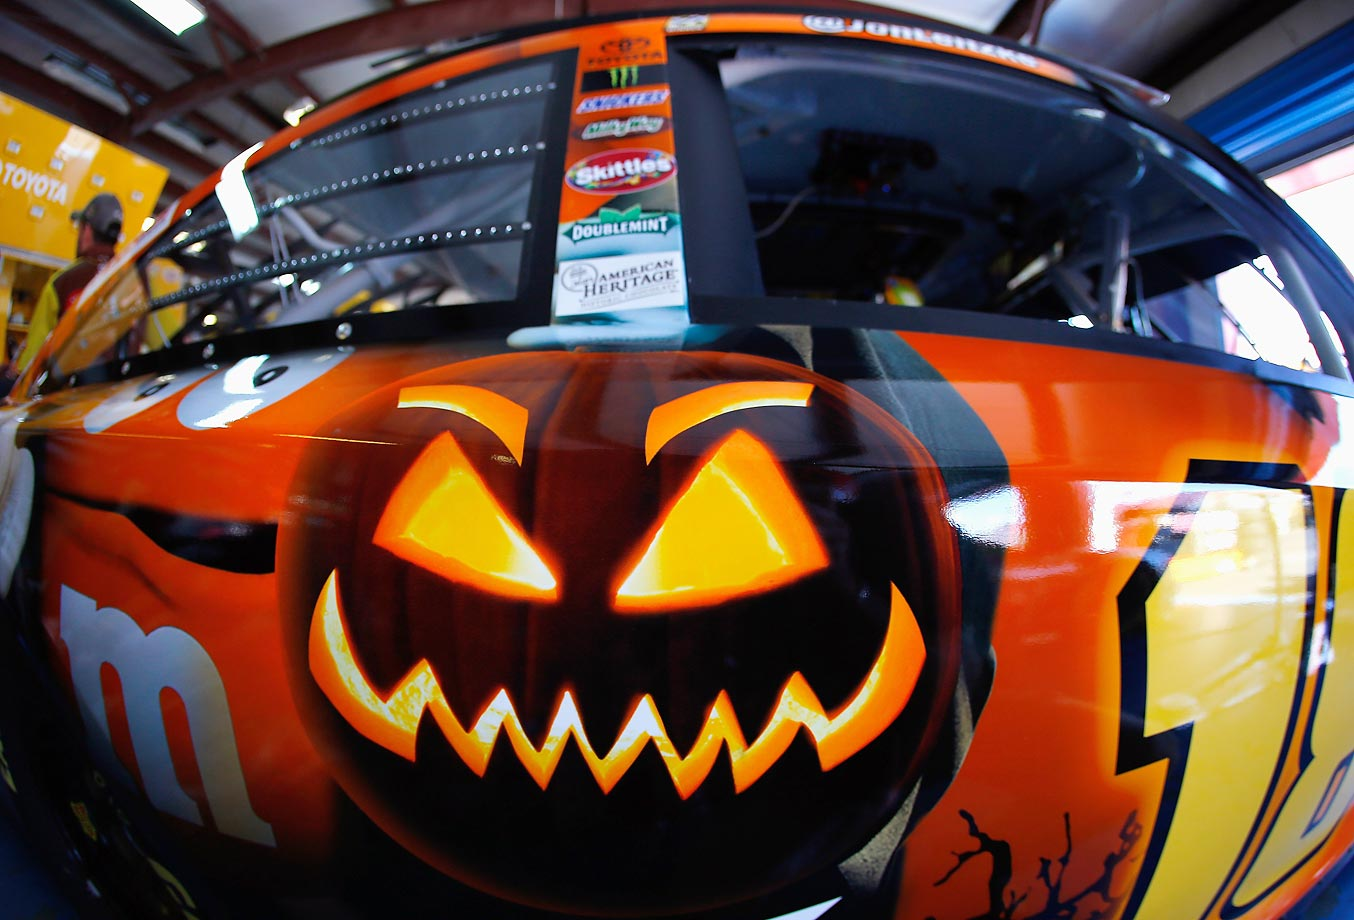 The M&M's Toyota is dressed up for Halloween.